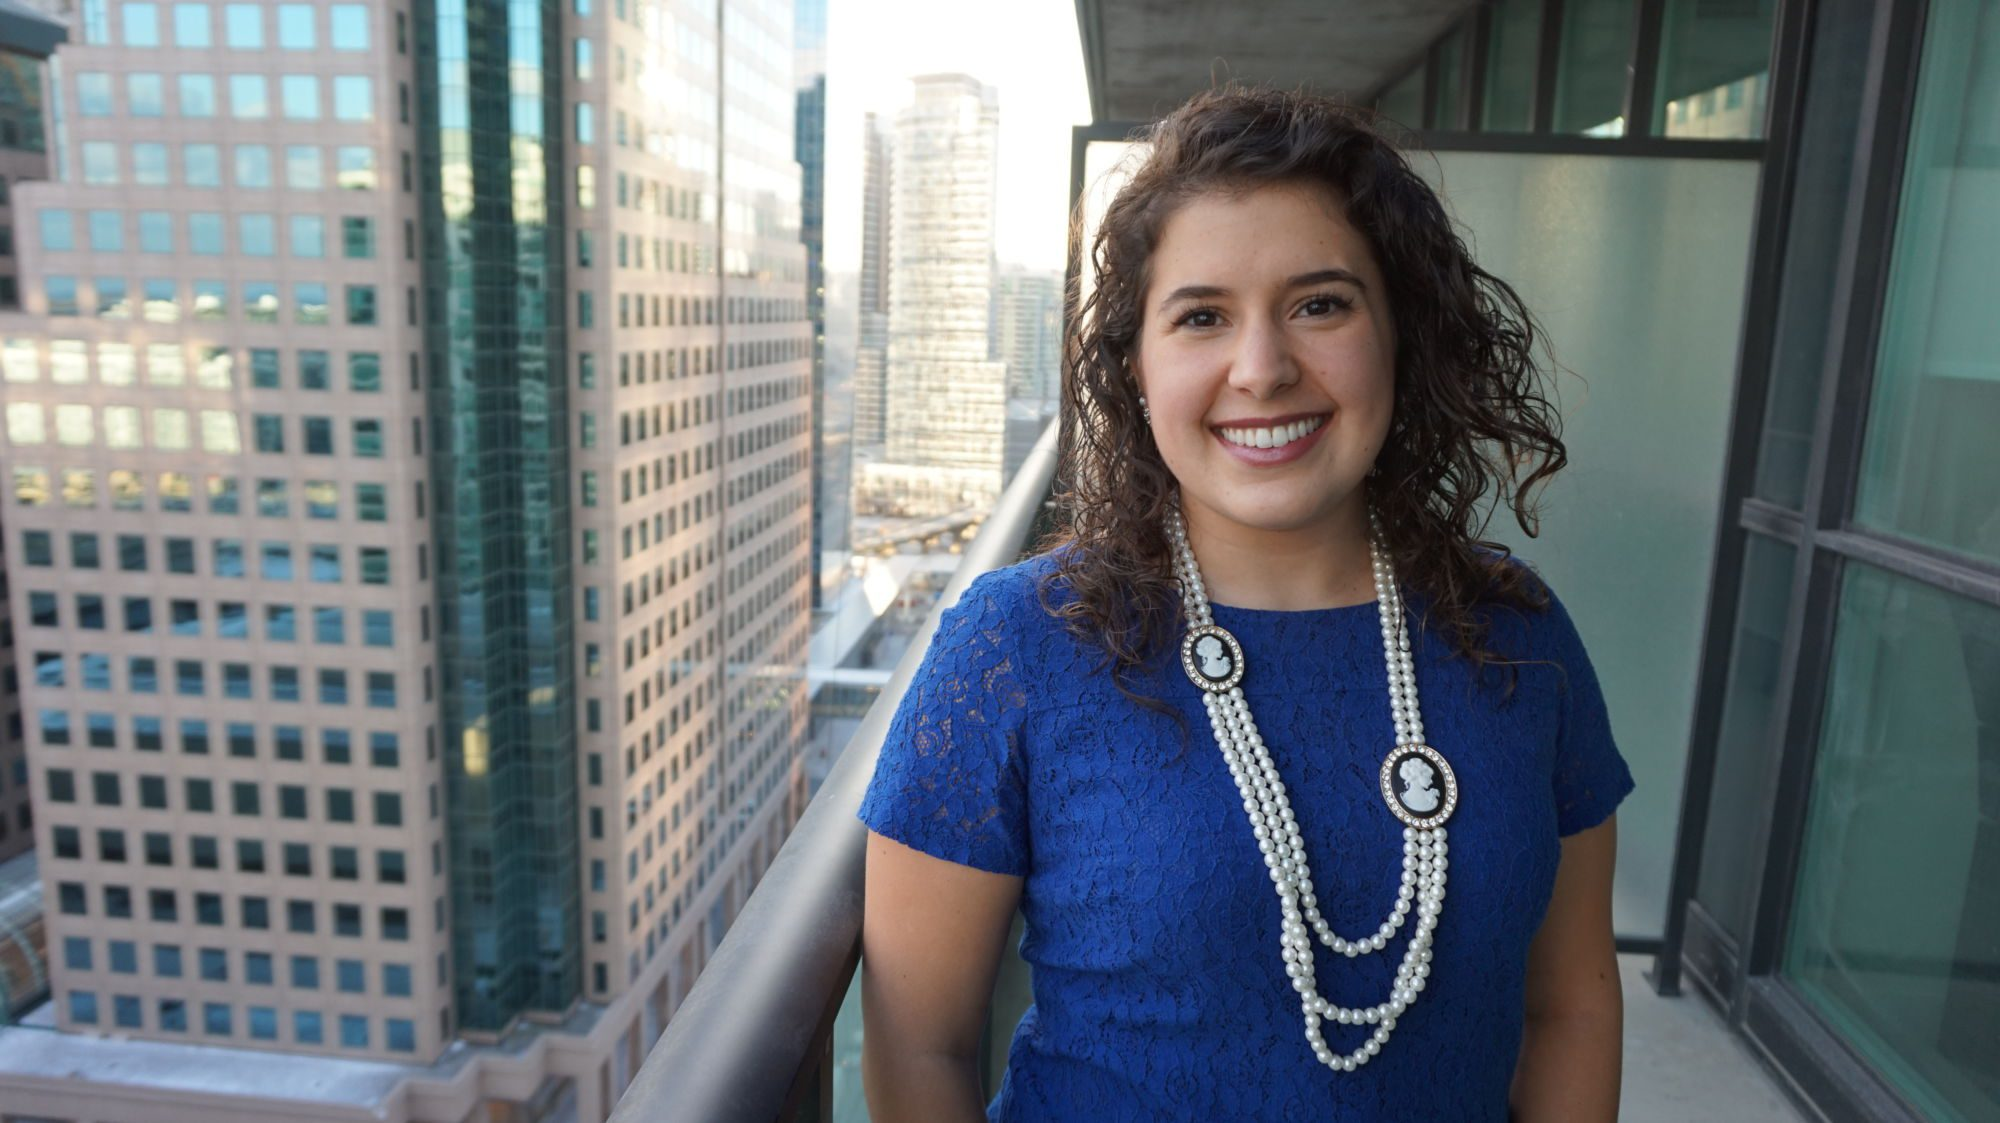 Masters of Health Information Sciences graduate Melissa Kargiannakis looks to make the Internet's boundless array of information understandable for all with the simple click of a button.